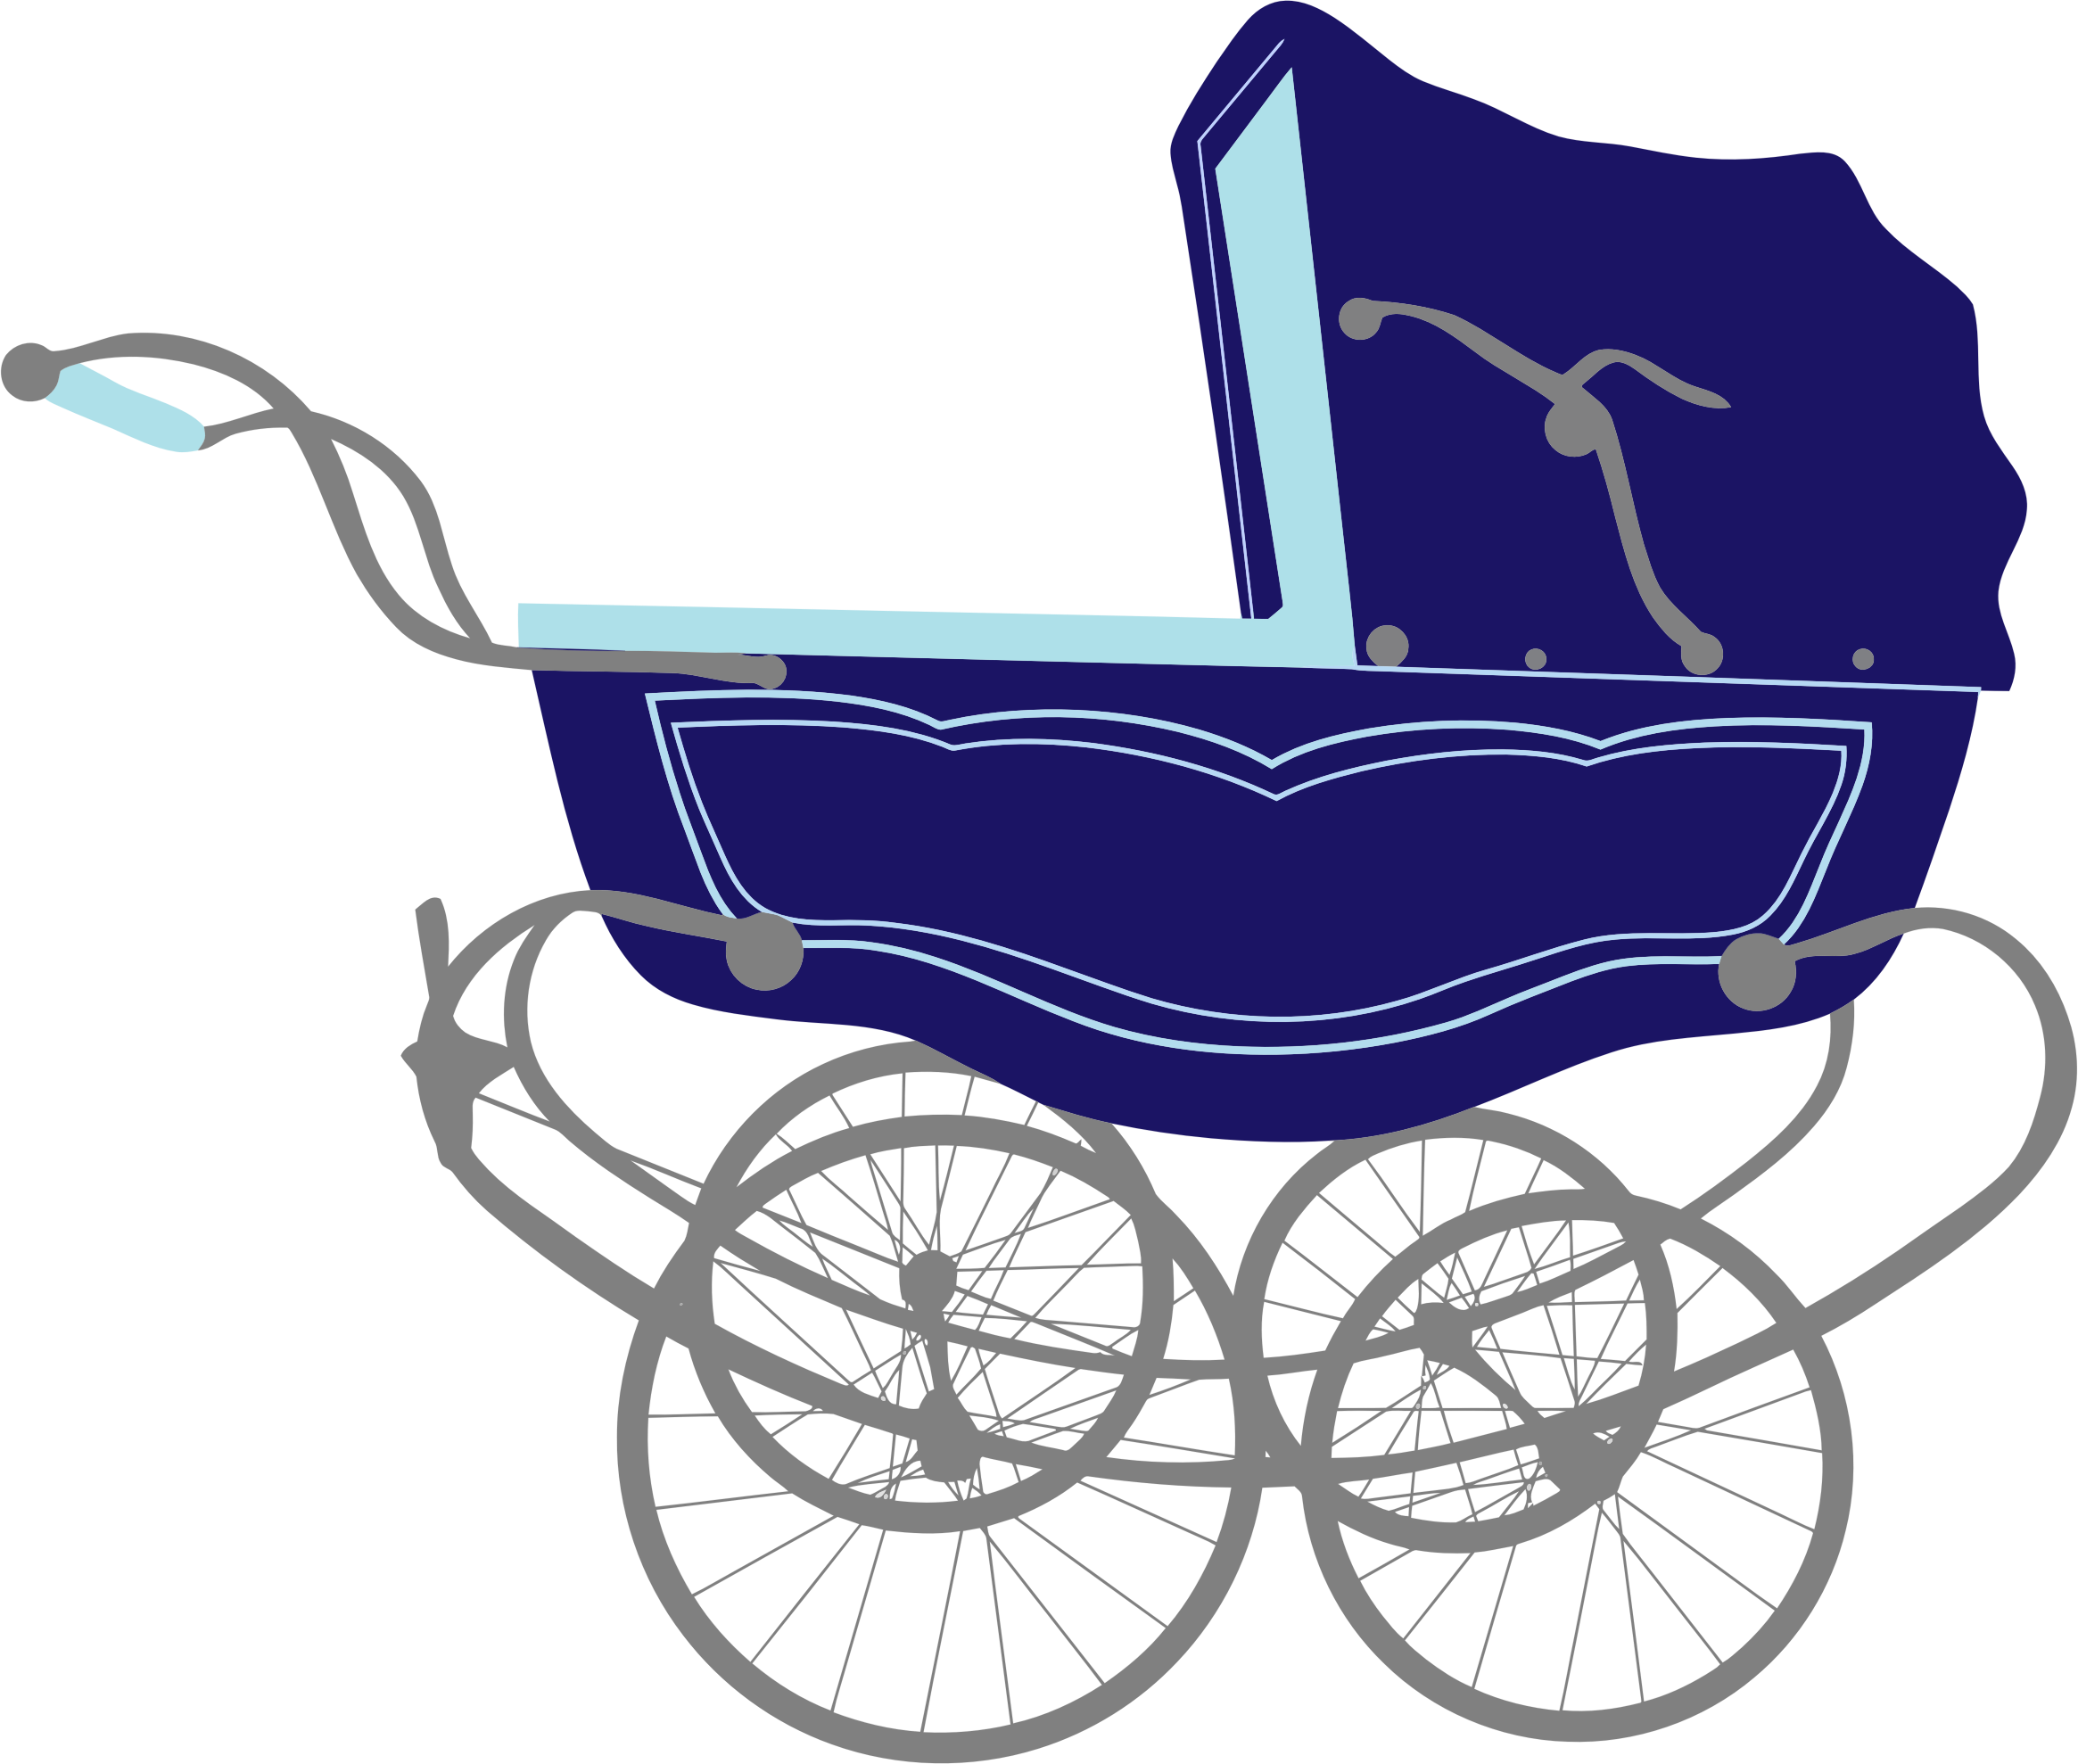 Vintage blue stroller carriage. Wagon clipart baby jpg freeuse library